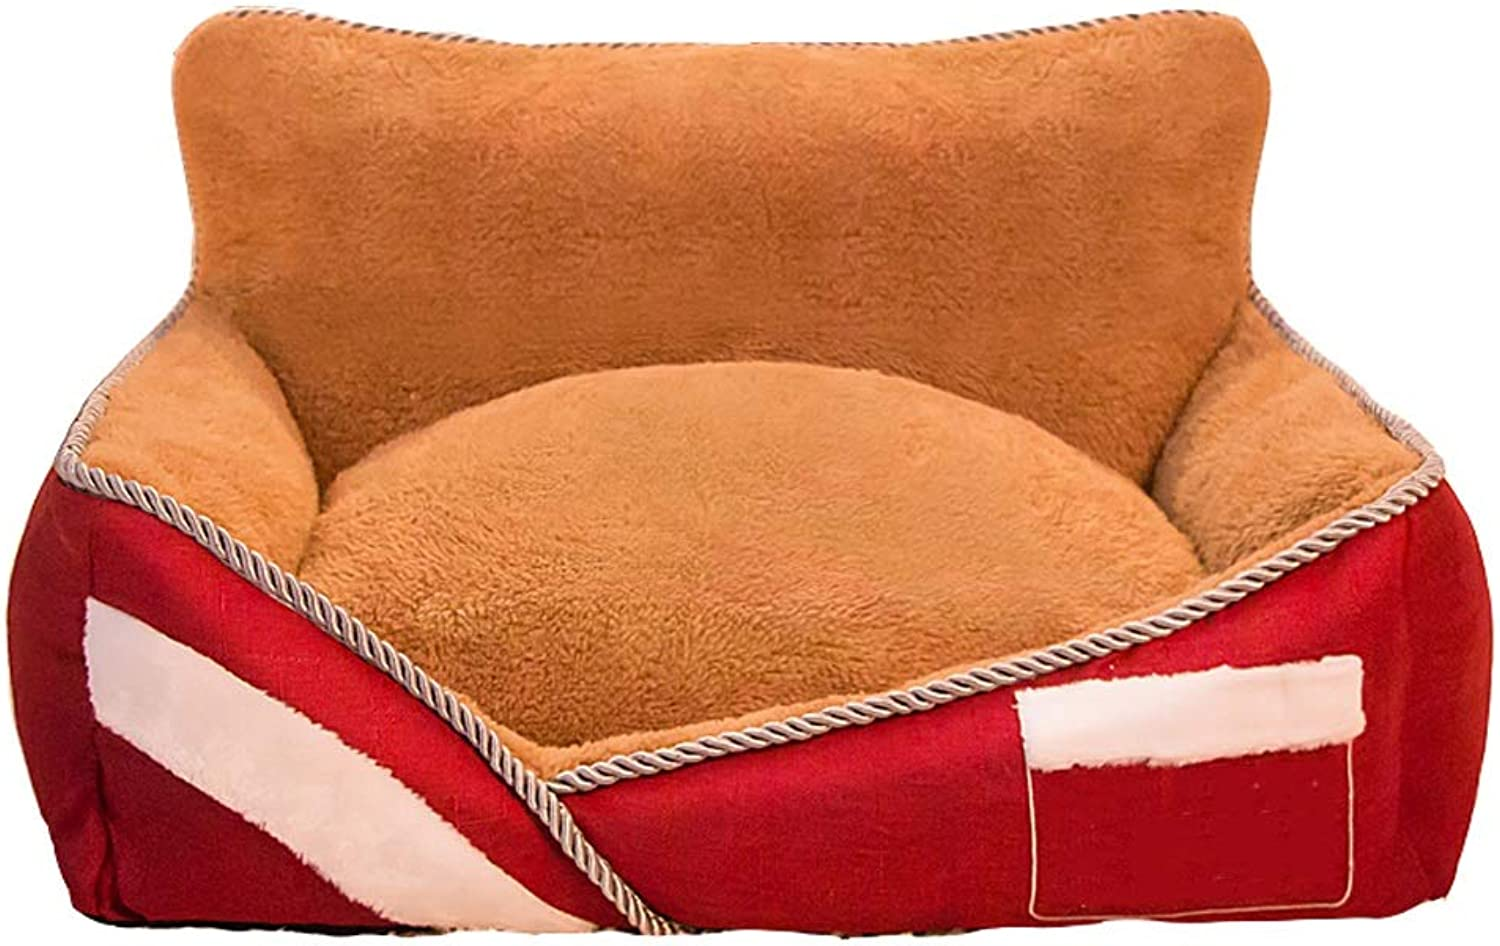 B&F Dog Bed, Dog House Winter Warm Medium Washable Kennel Cat Litter Small Dog Pet Supplies (color   Red, Size   S)